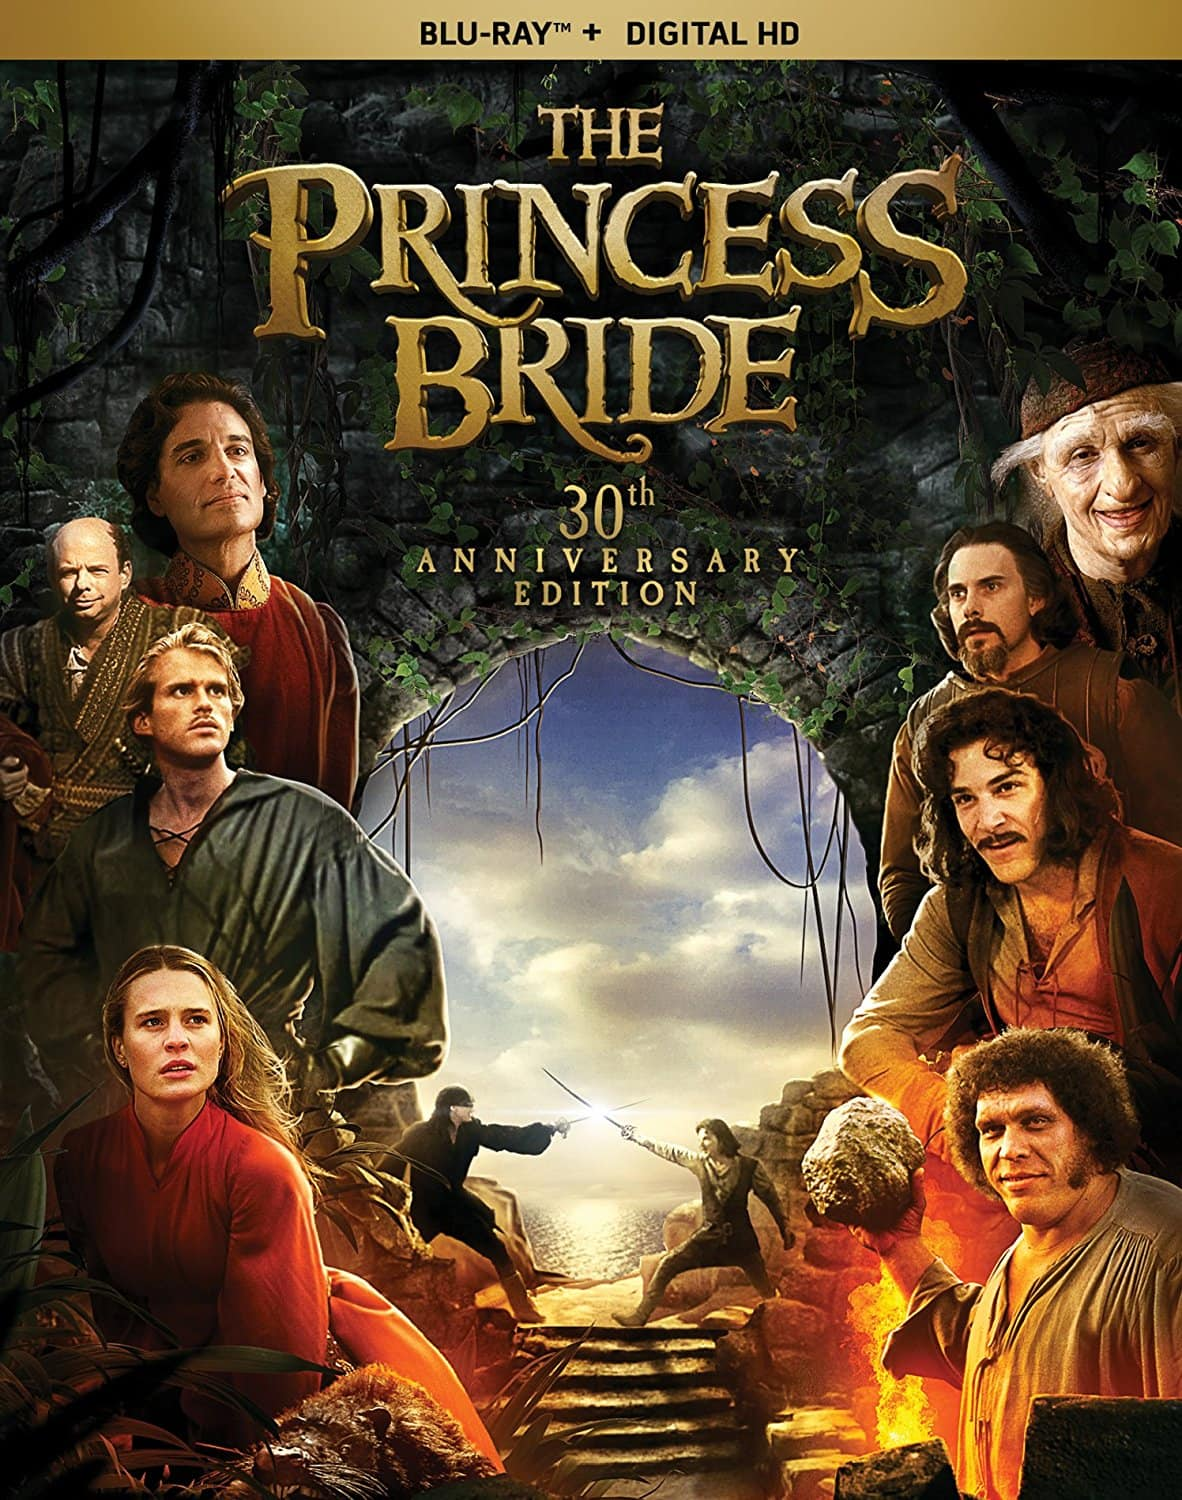 The Princess Bride: 30th Anniversary Edition (Blu-ray + Digital HD) $7.99 or Less via Amazon/Best Buy